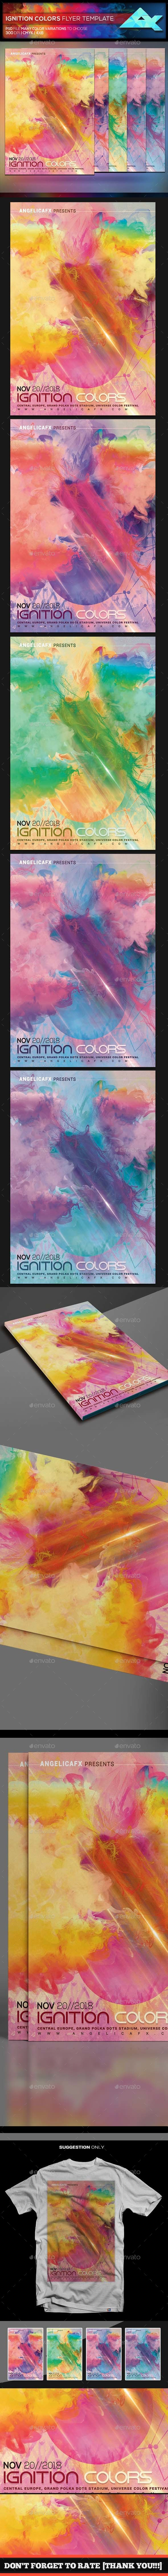 Ignition Colors Flyer/Poster Template - Events Flyers